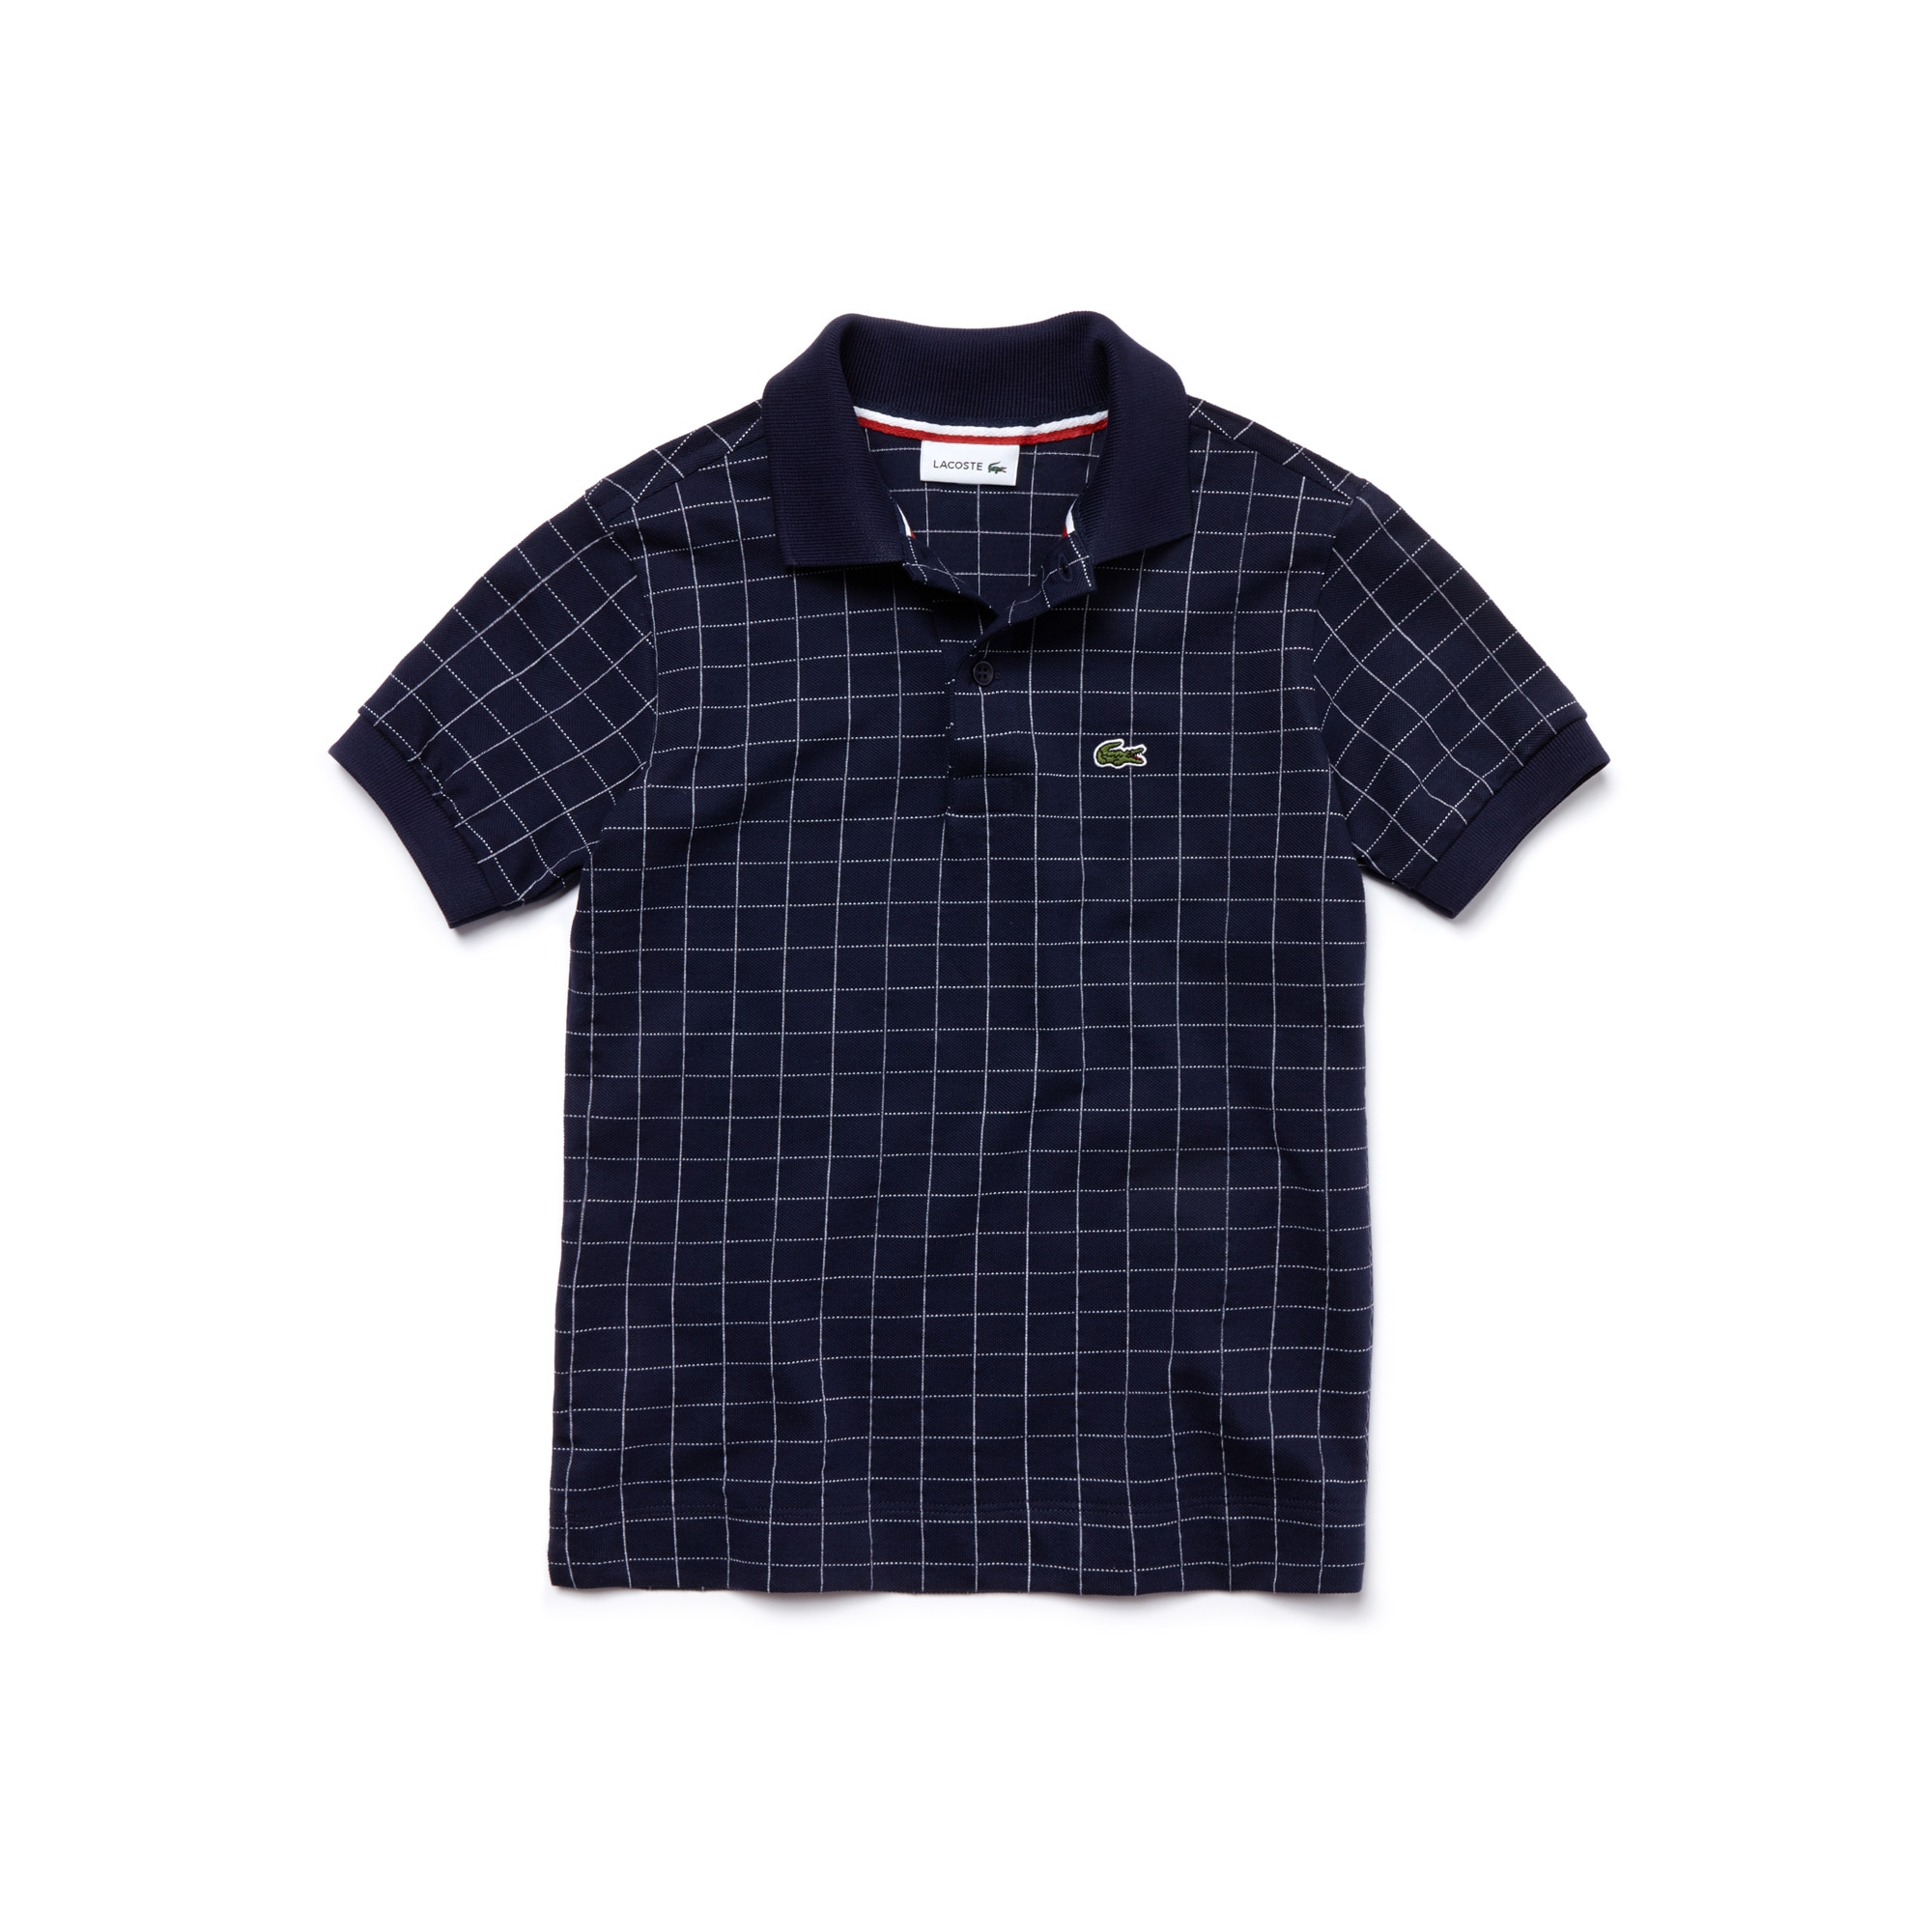 Kids' Classic Fit Net Print Fine Cotton Piqué Polo Shirt